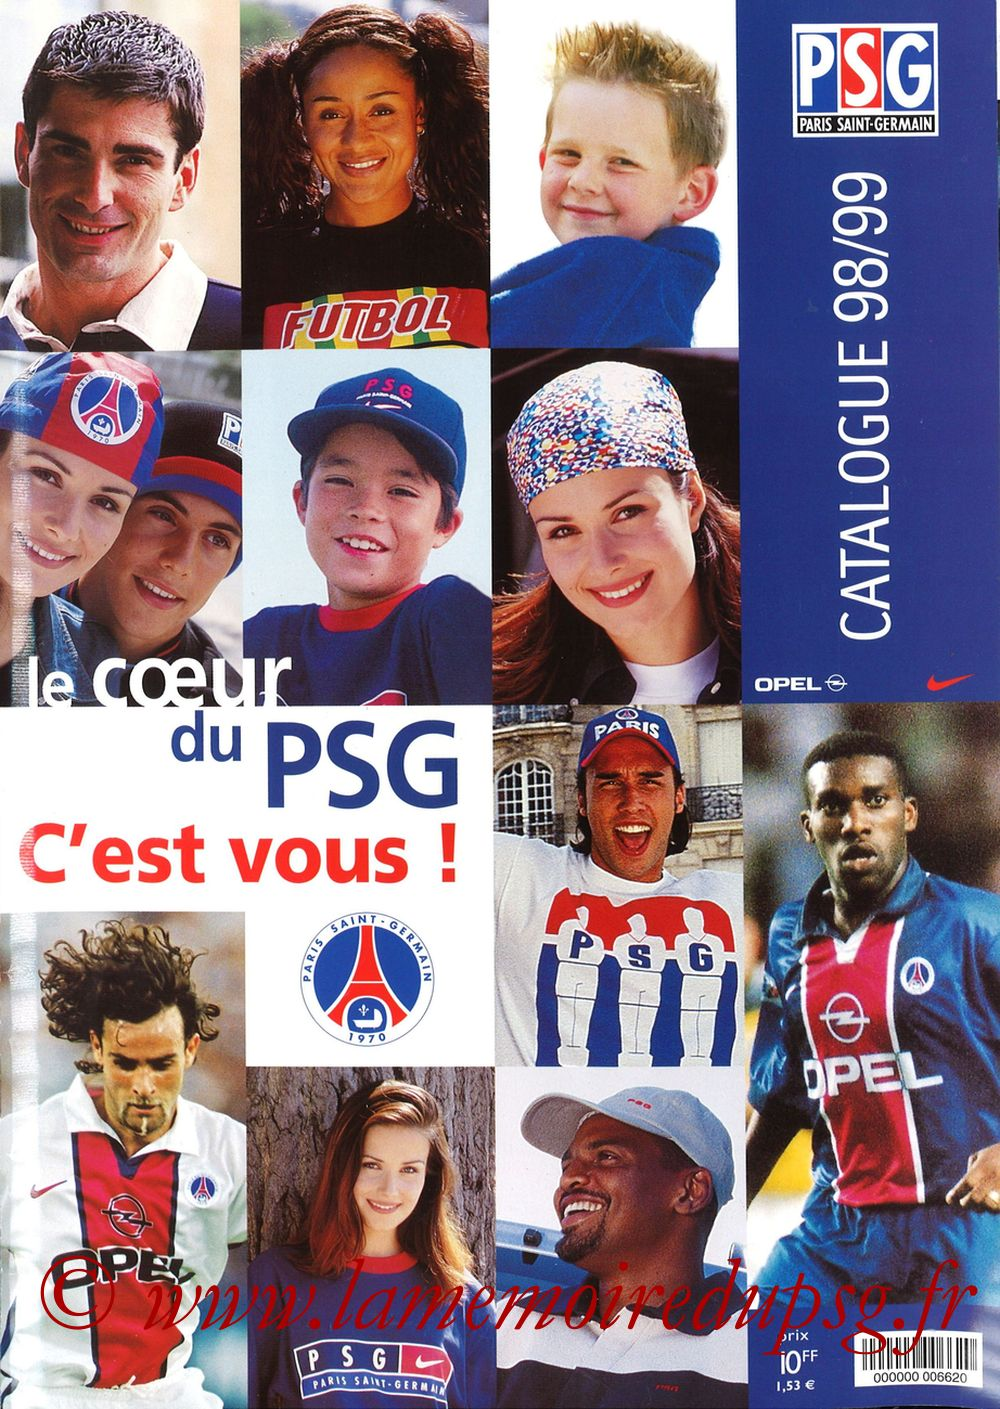 Catalogue PSG - 1998-99